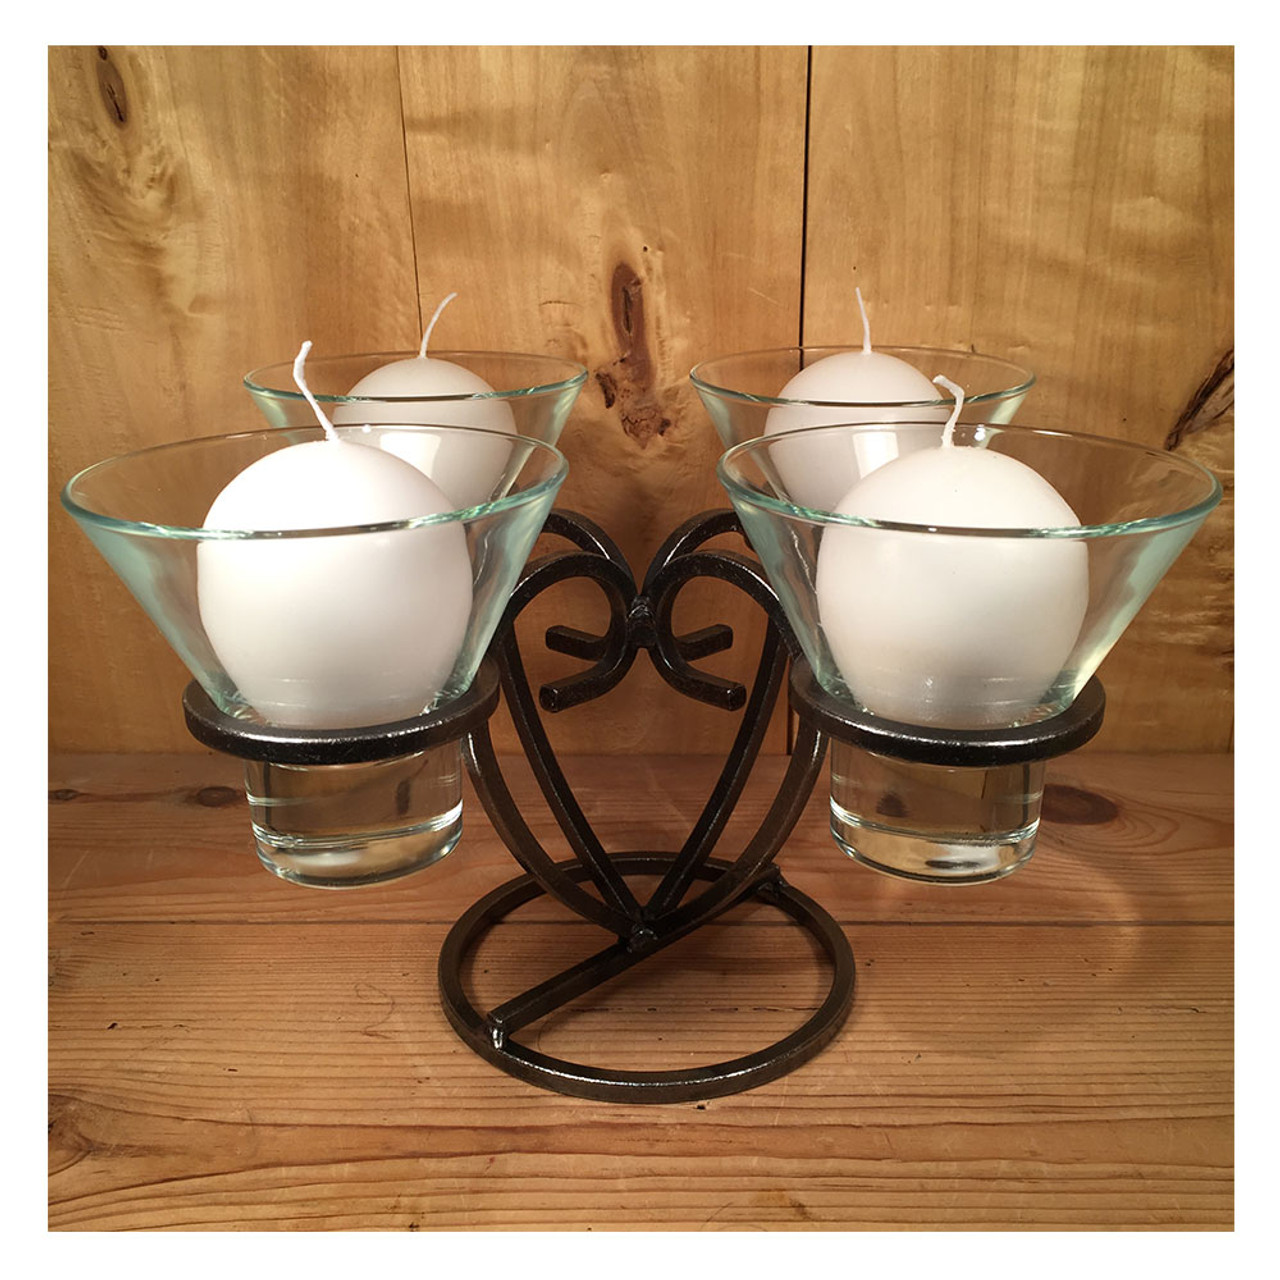 Danish Iron Candle Holder/Advent Wreath w/Glass Cups